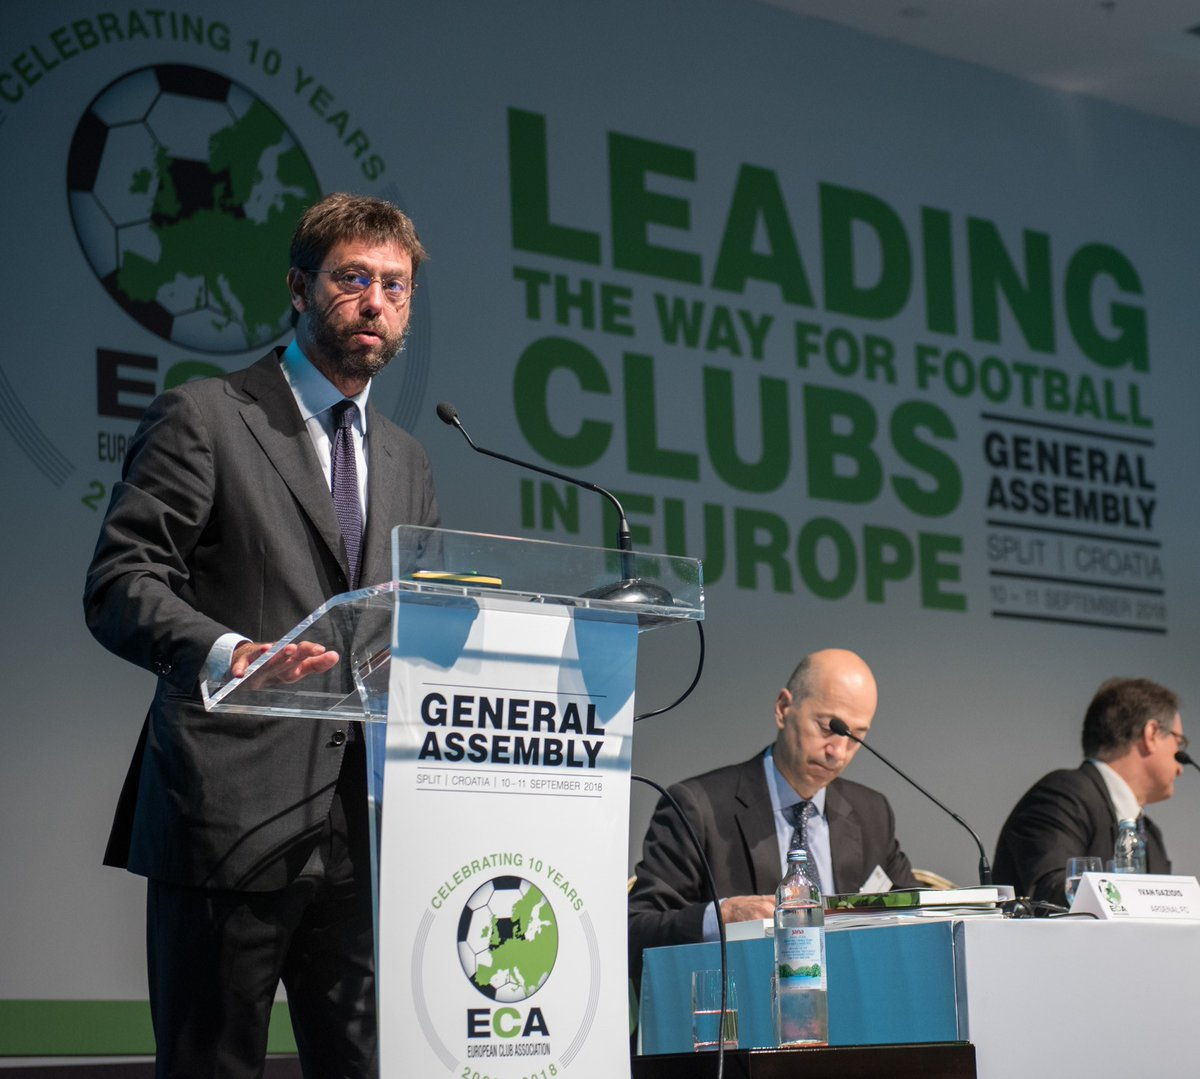 Photo of UEFA scraps away goals rule in all European club competitions